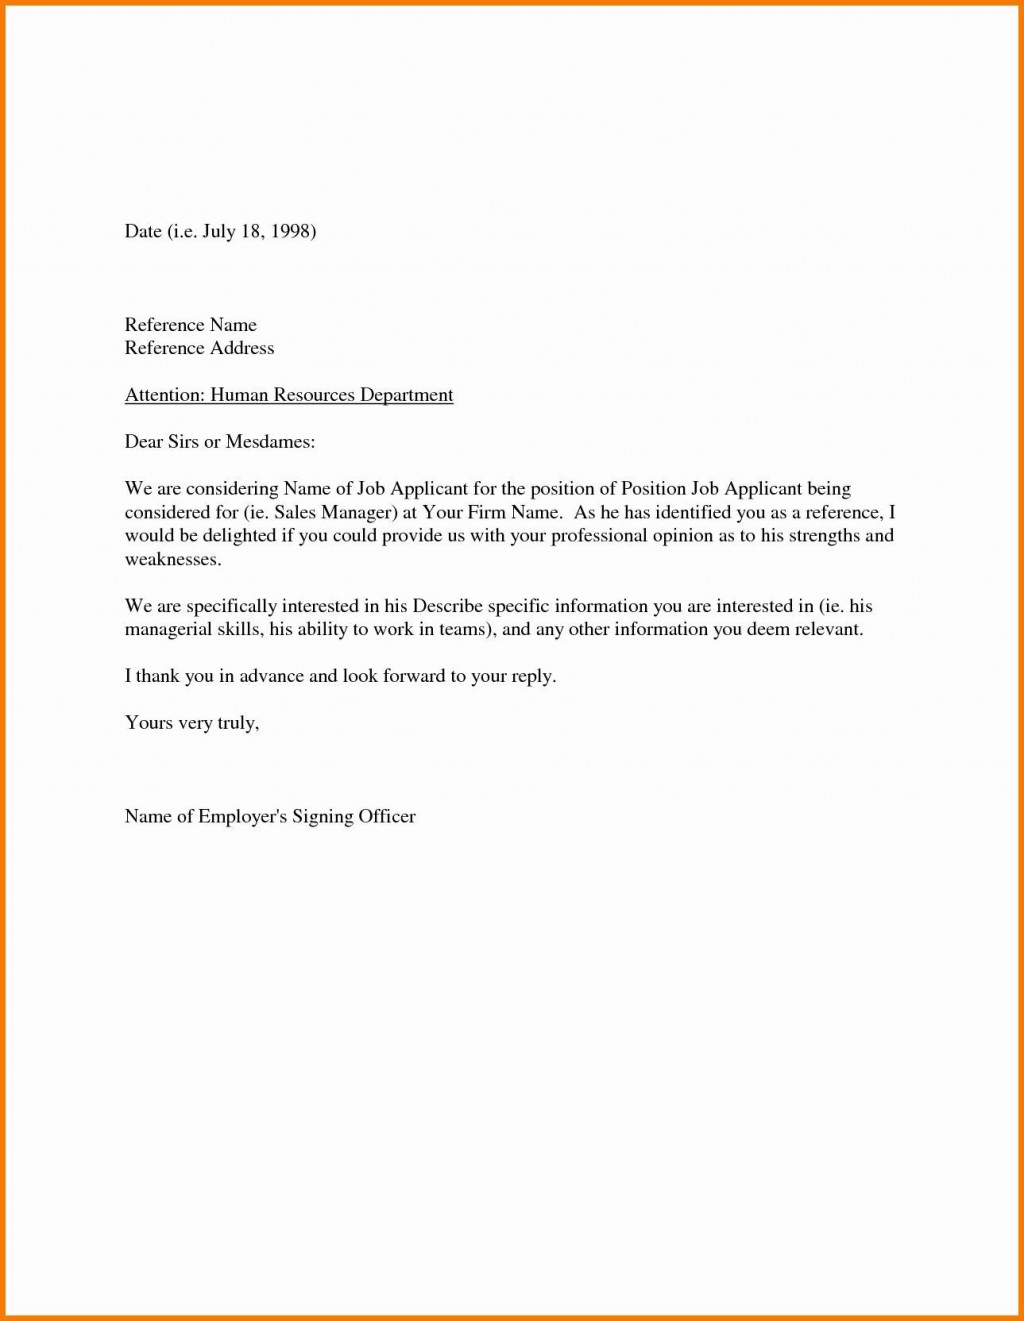 000 Rare Letter Of Recommendation Template Word Image  General Free DocLarge